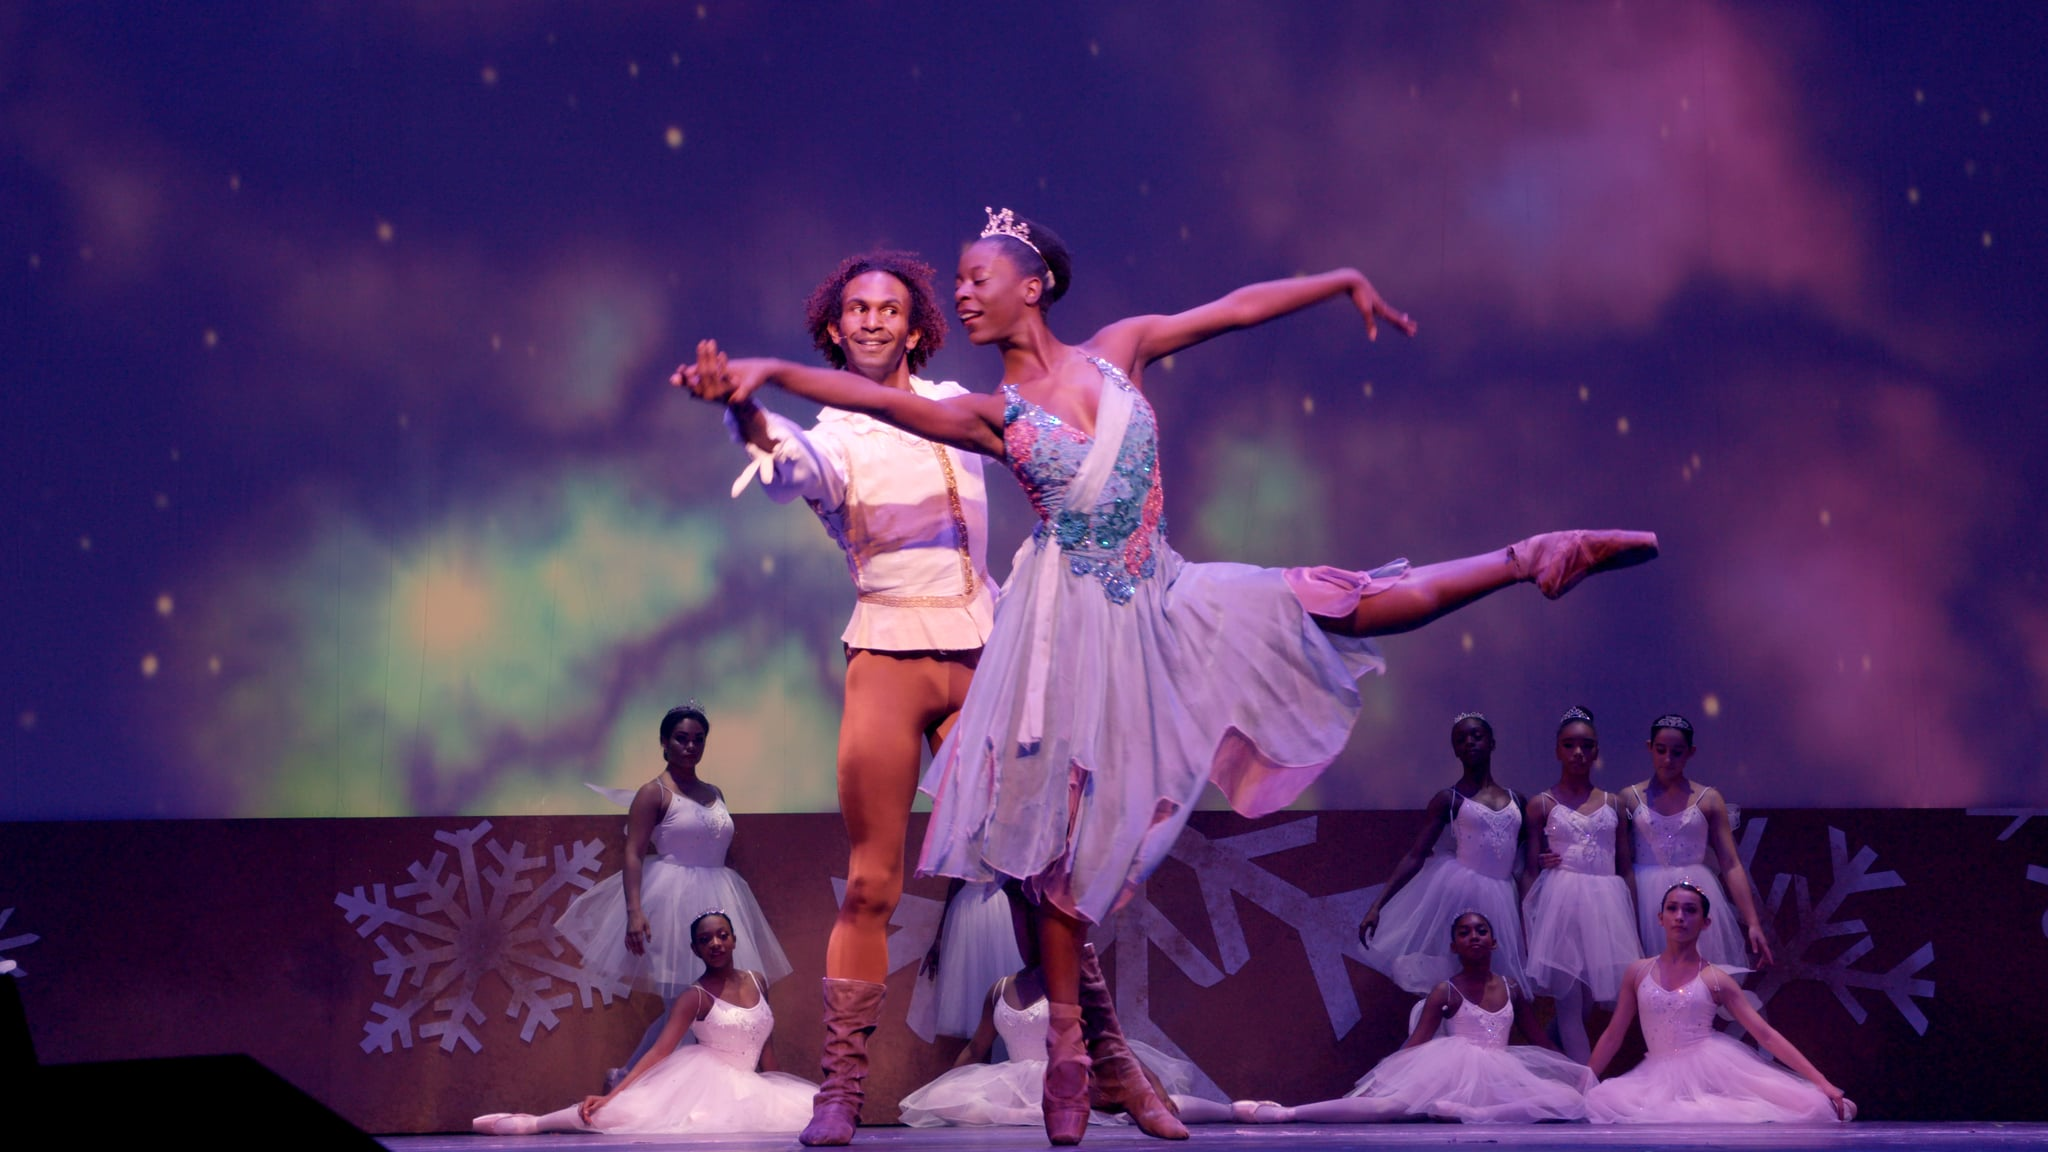 April Watson in Dance Dreams: Hot Chocolate Nutcracker. c. Courtesy of Netflix © 2020